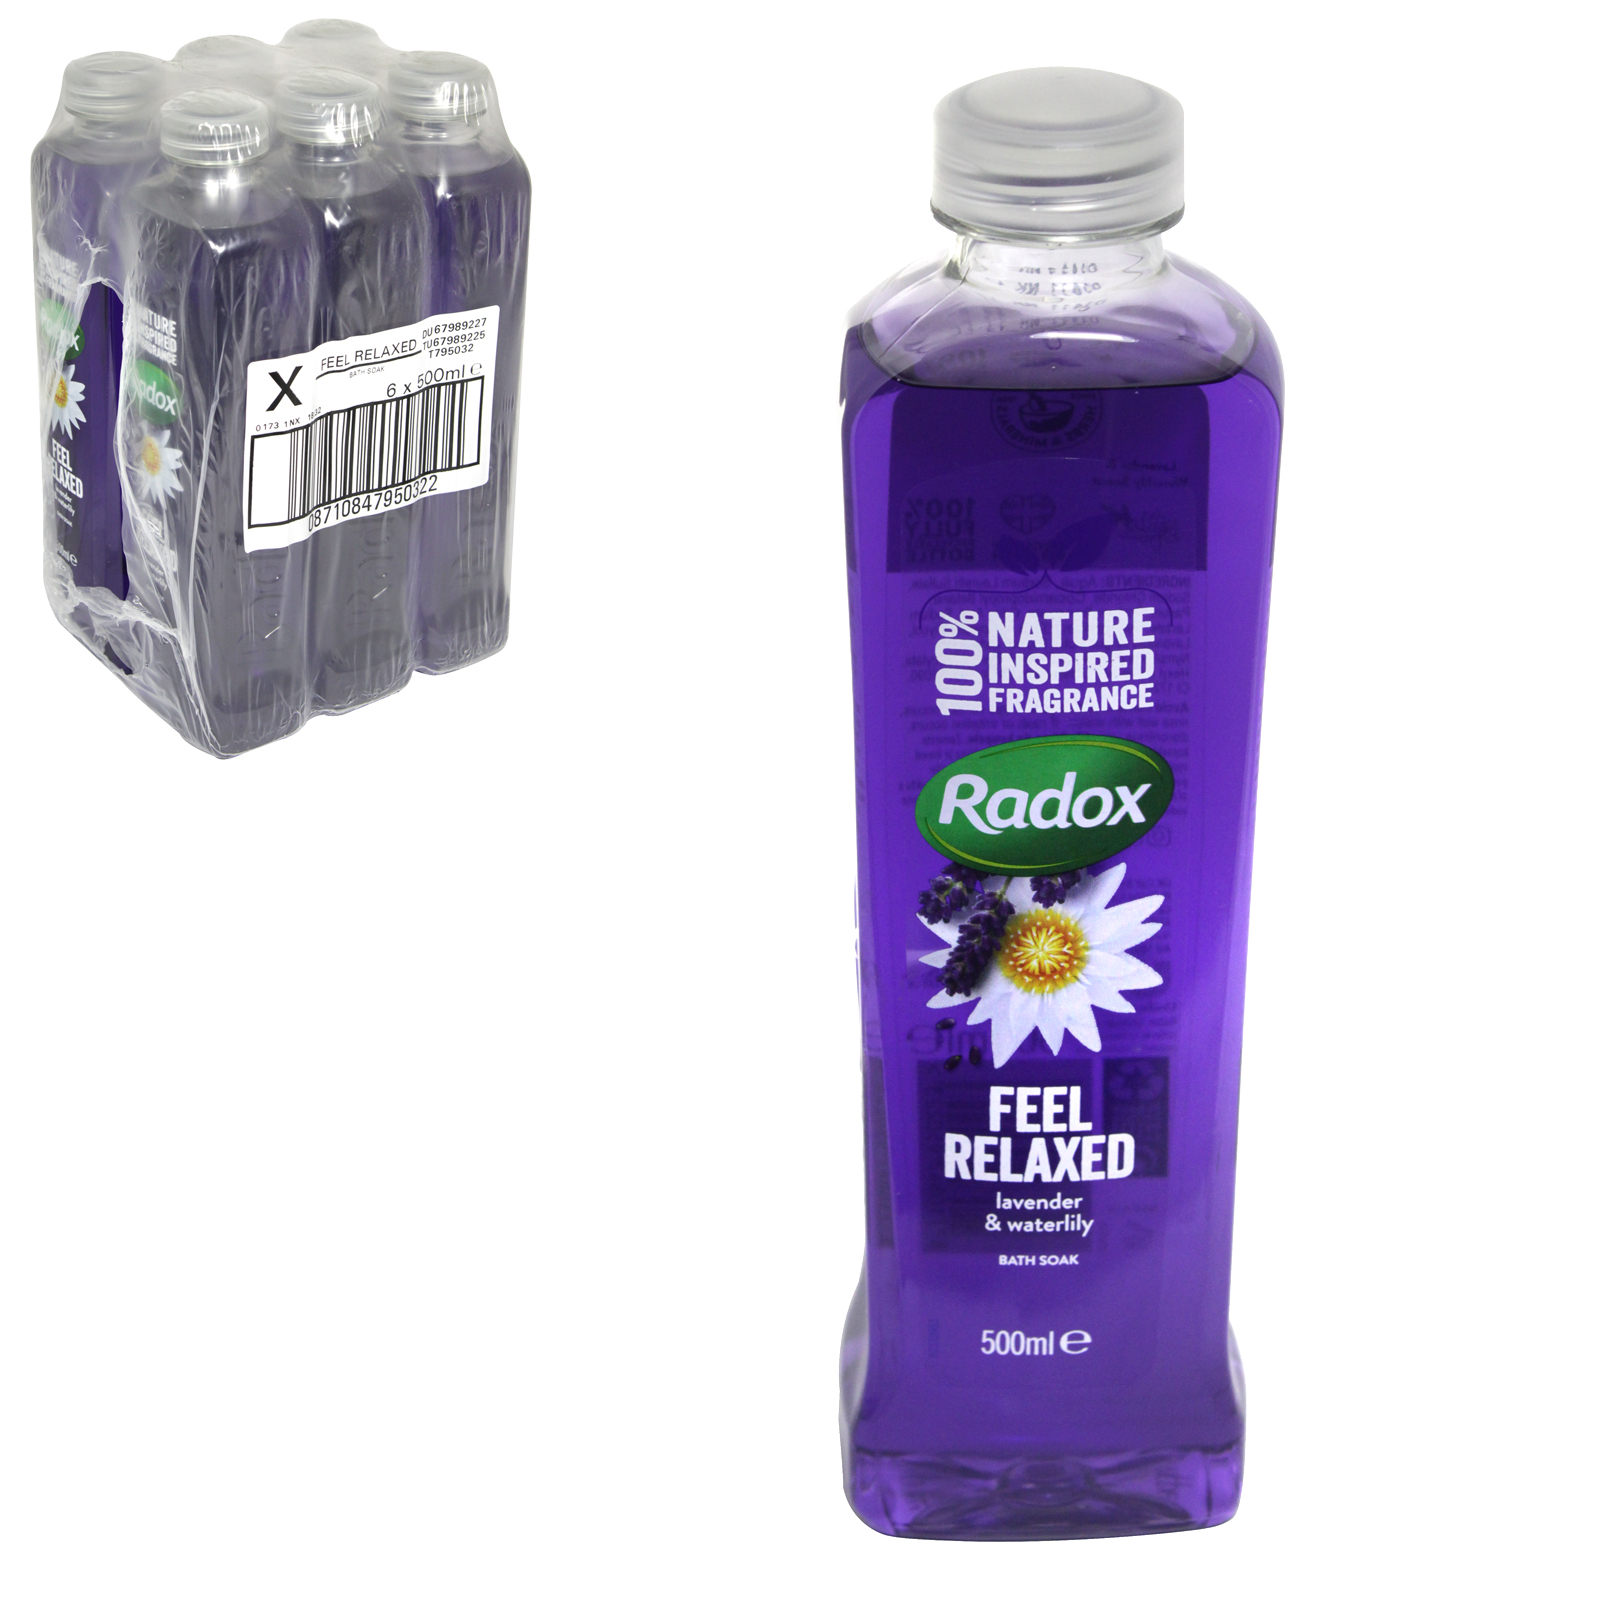 RADOX HERBAL BATH 500ML FEEL RELAXED X6